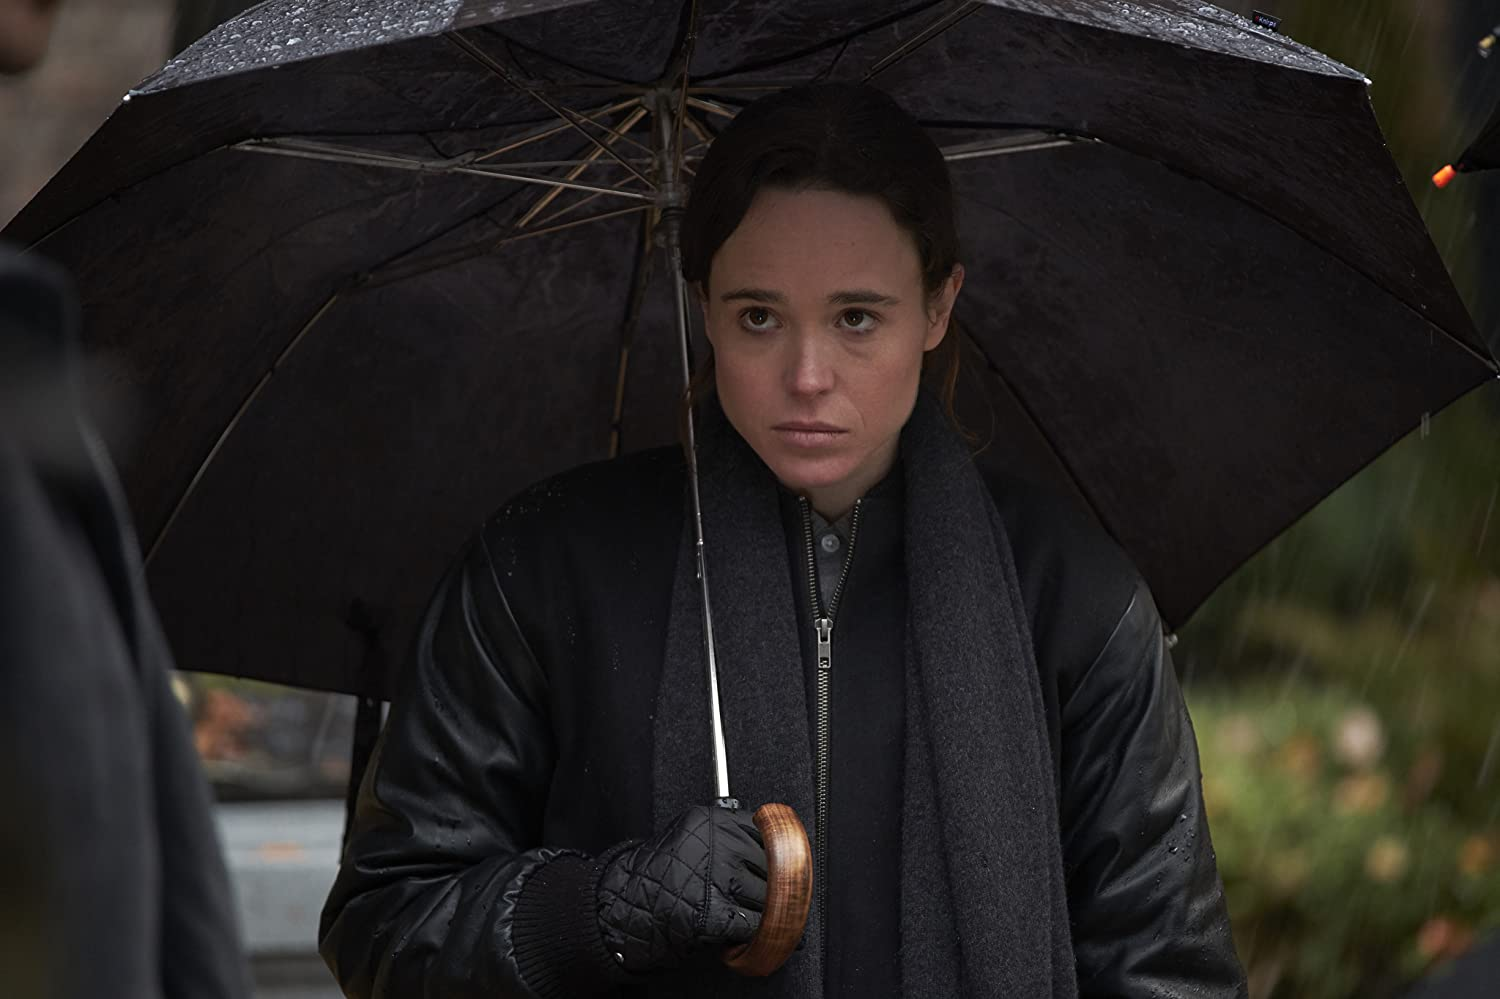 Ellen Page in The Umbrella Academy (2019)